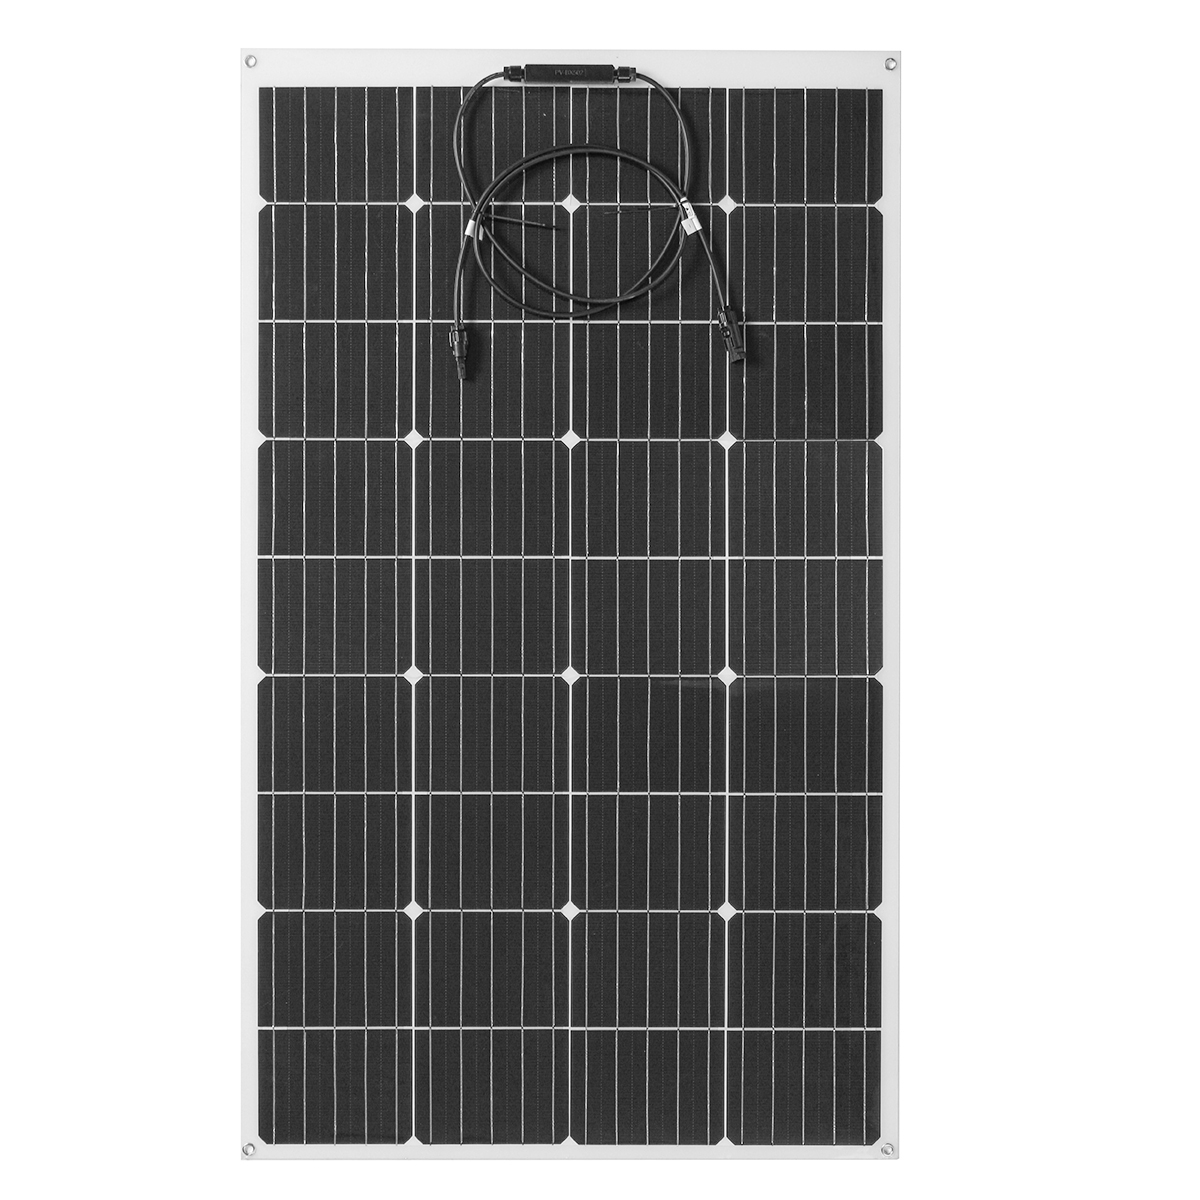 150W 18V Highly Flexible Monocrystalline Solar Panel Connector Car Boat Camping